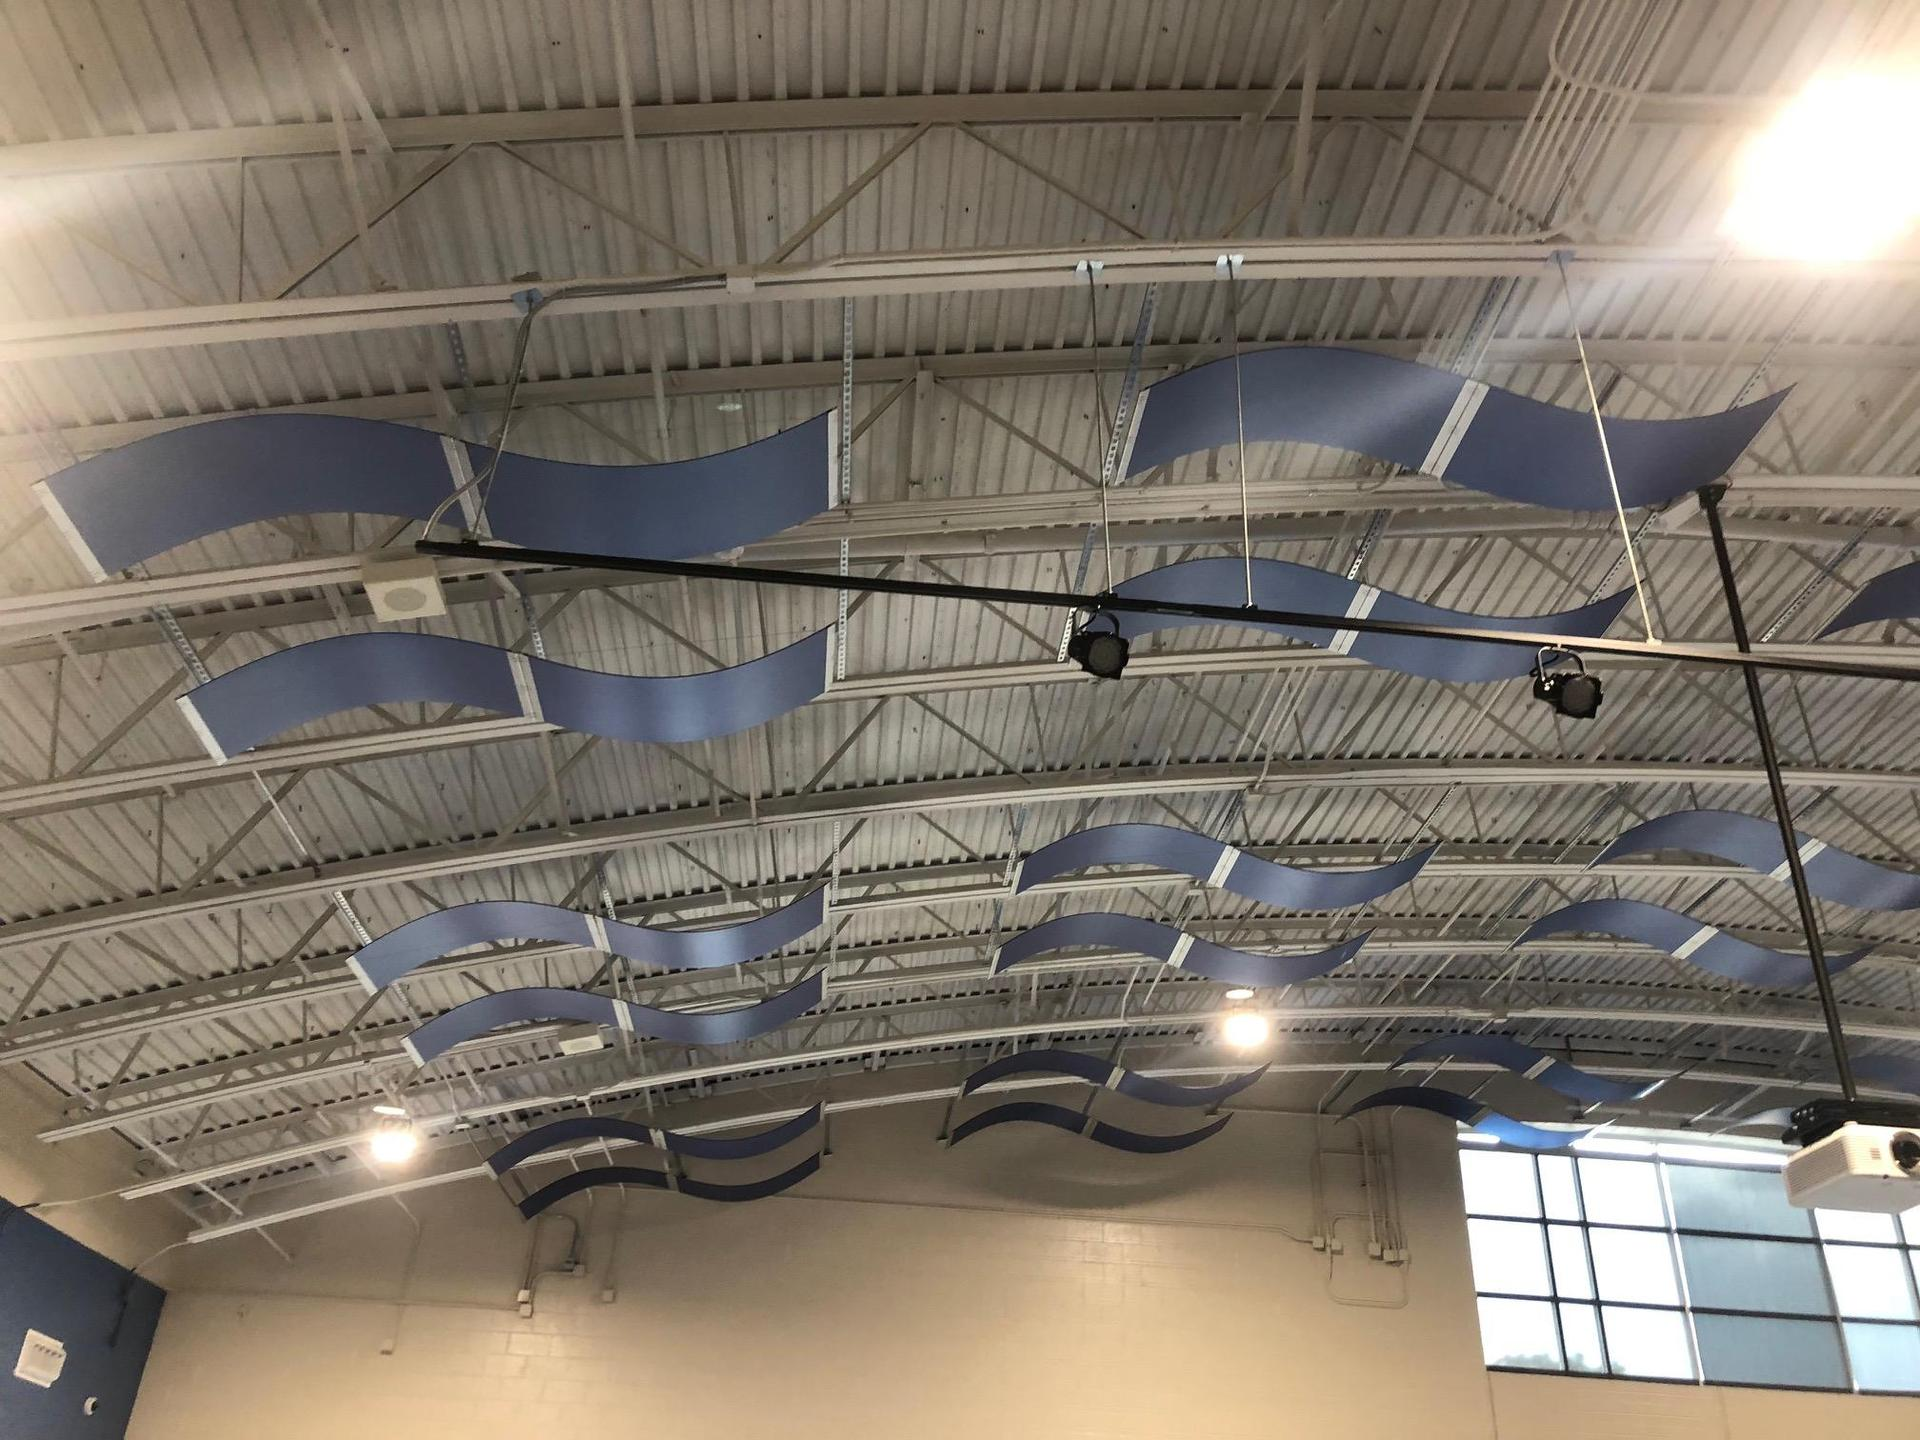 New cafeteria ceiling designed like an airplane hanger